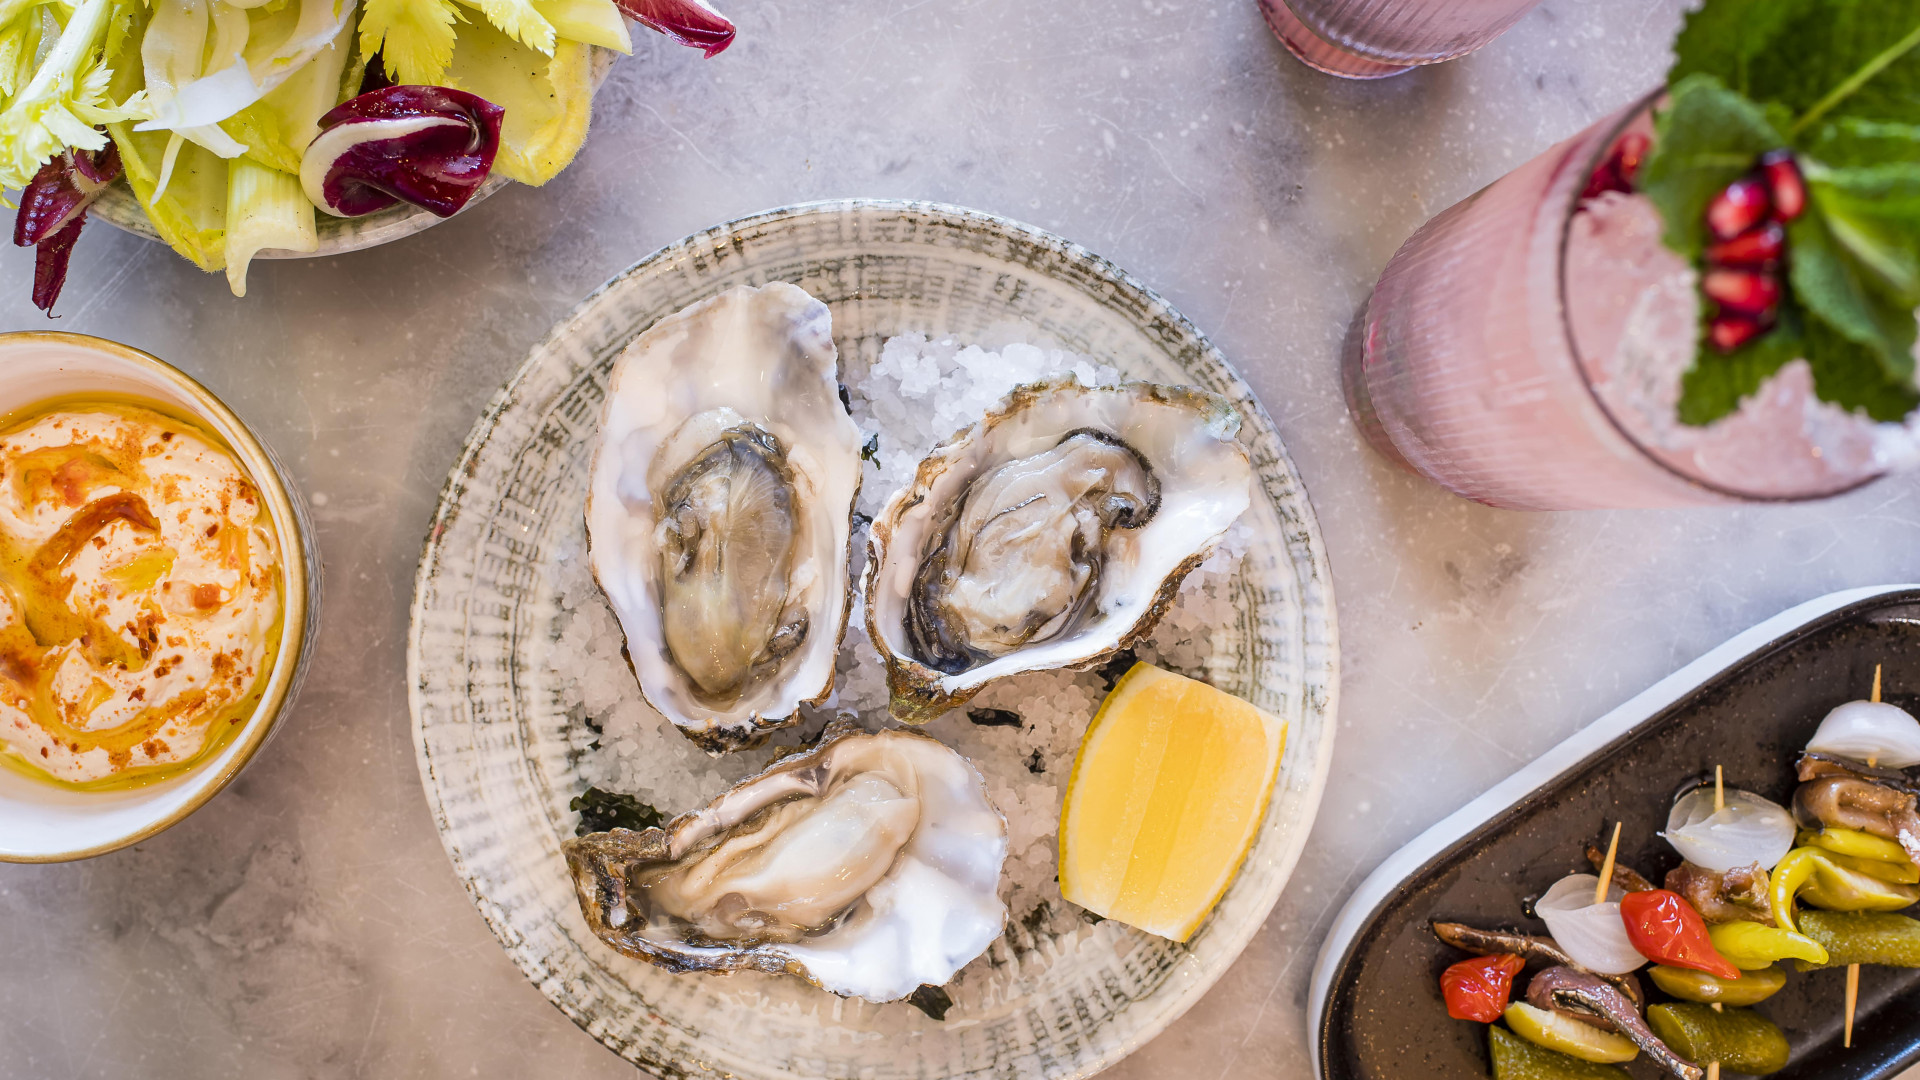 This is a photo of oysters, side dishes and a cocktail at Burnt Orange in Brighton.